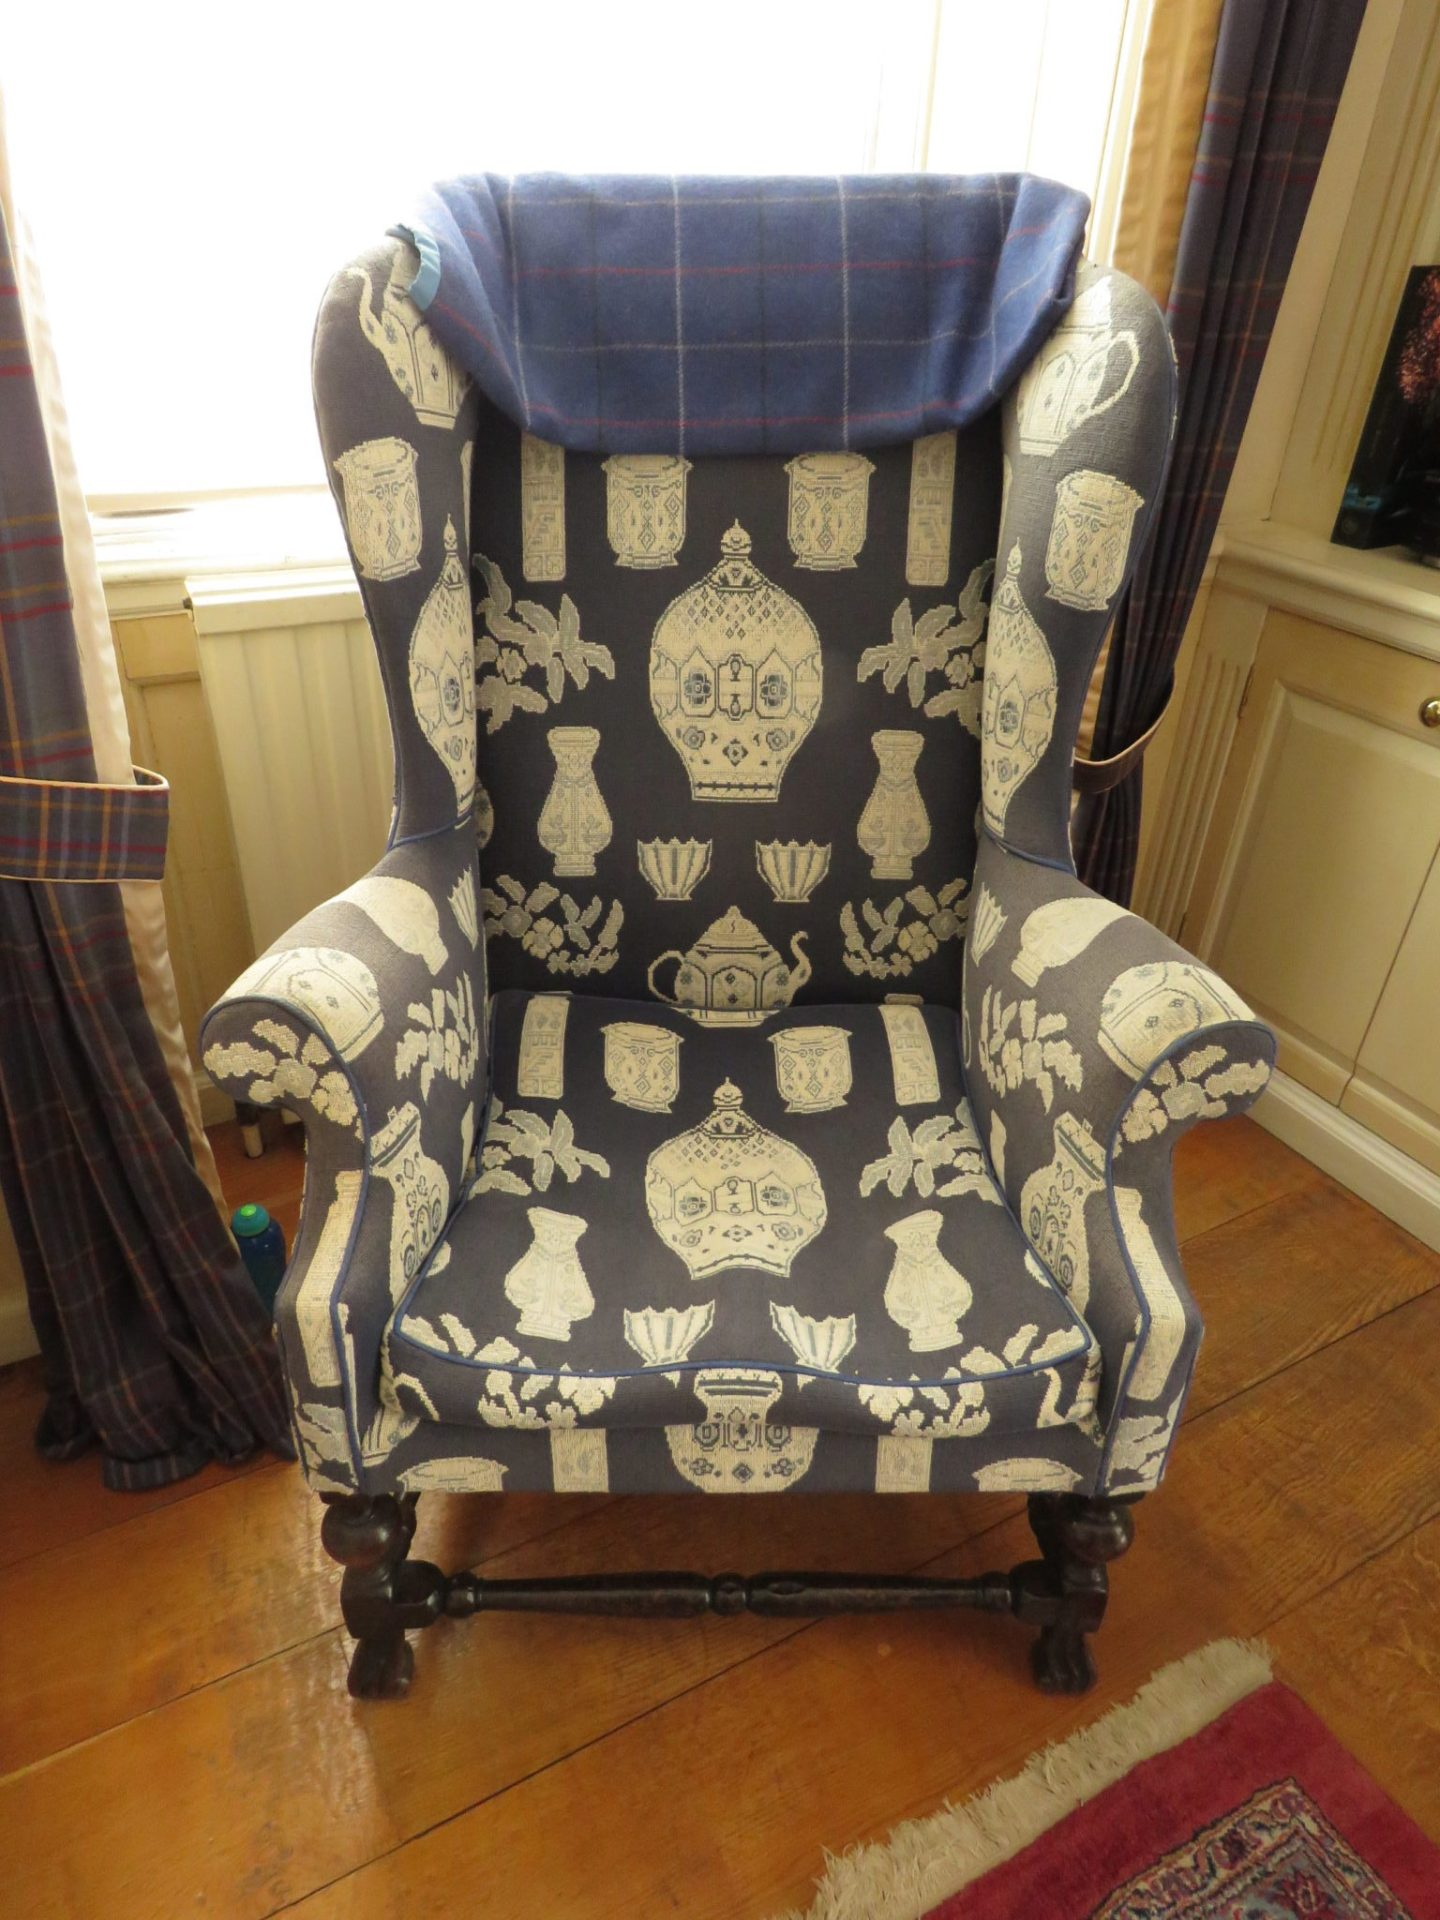 Sir Edward Heath's Teaport Chair, Arundells, Salisbury